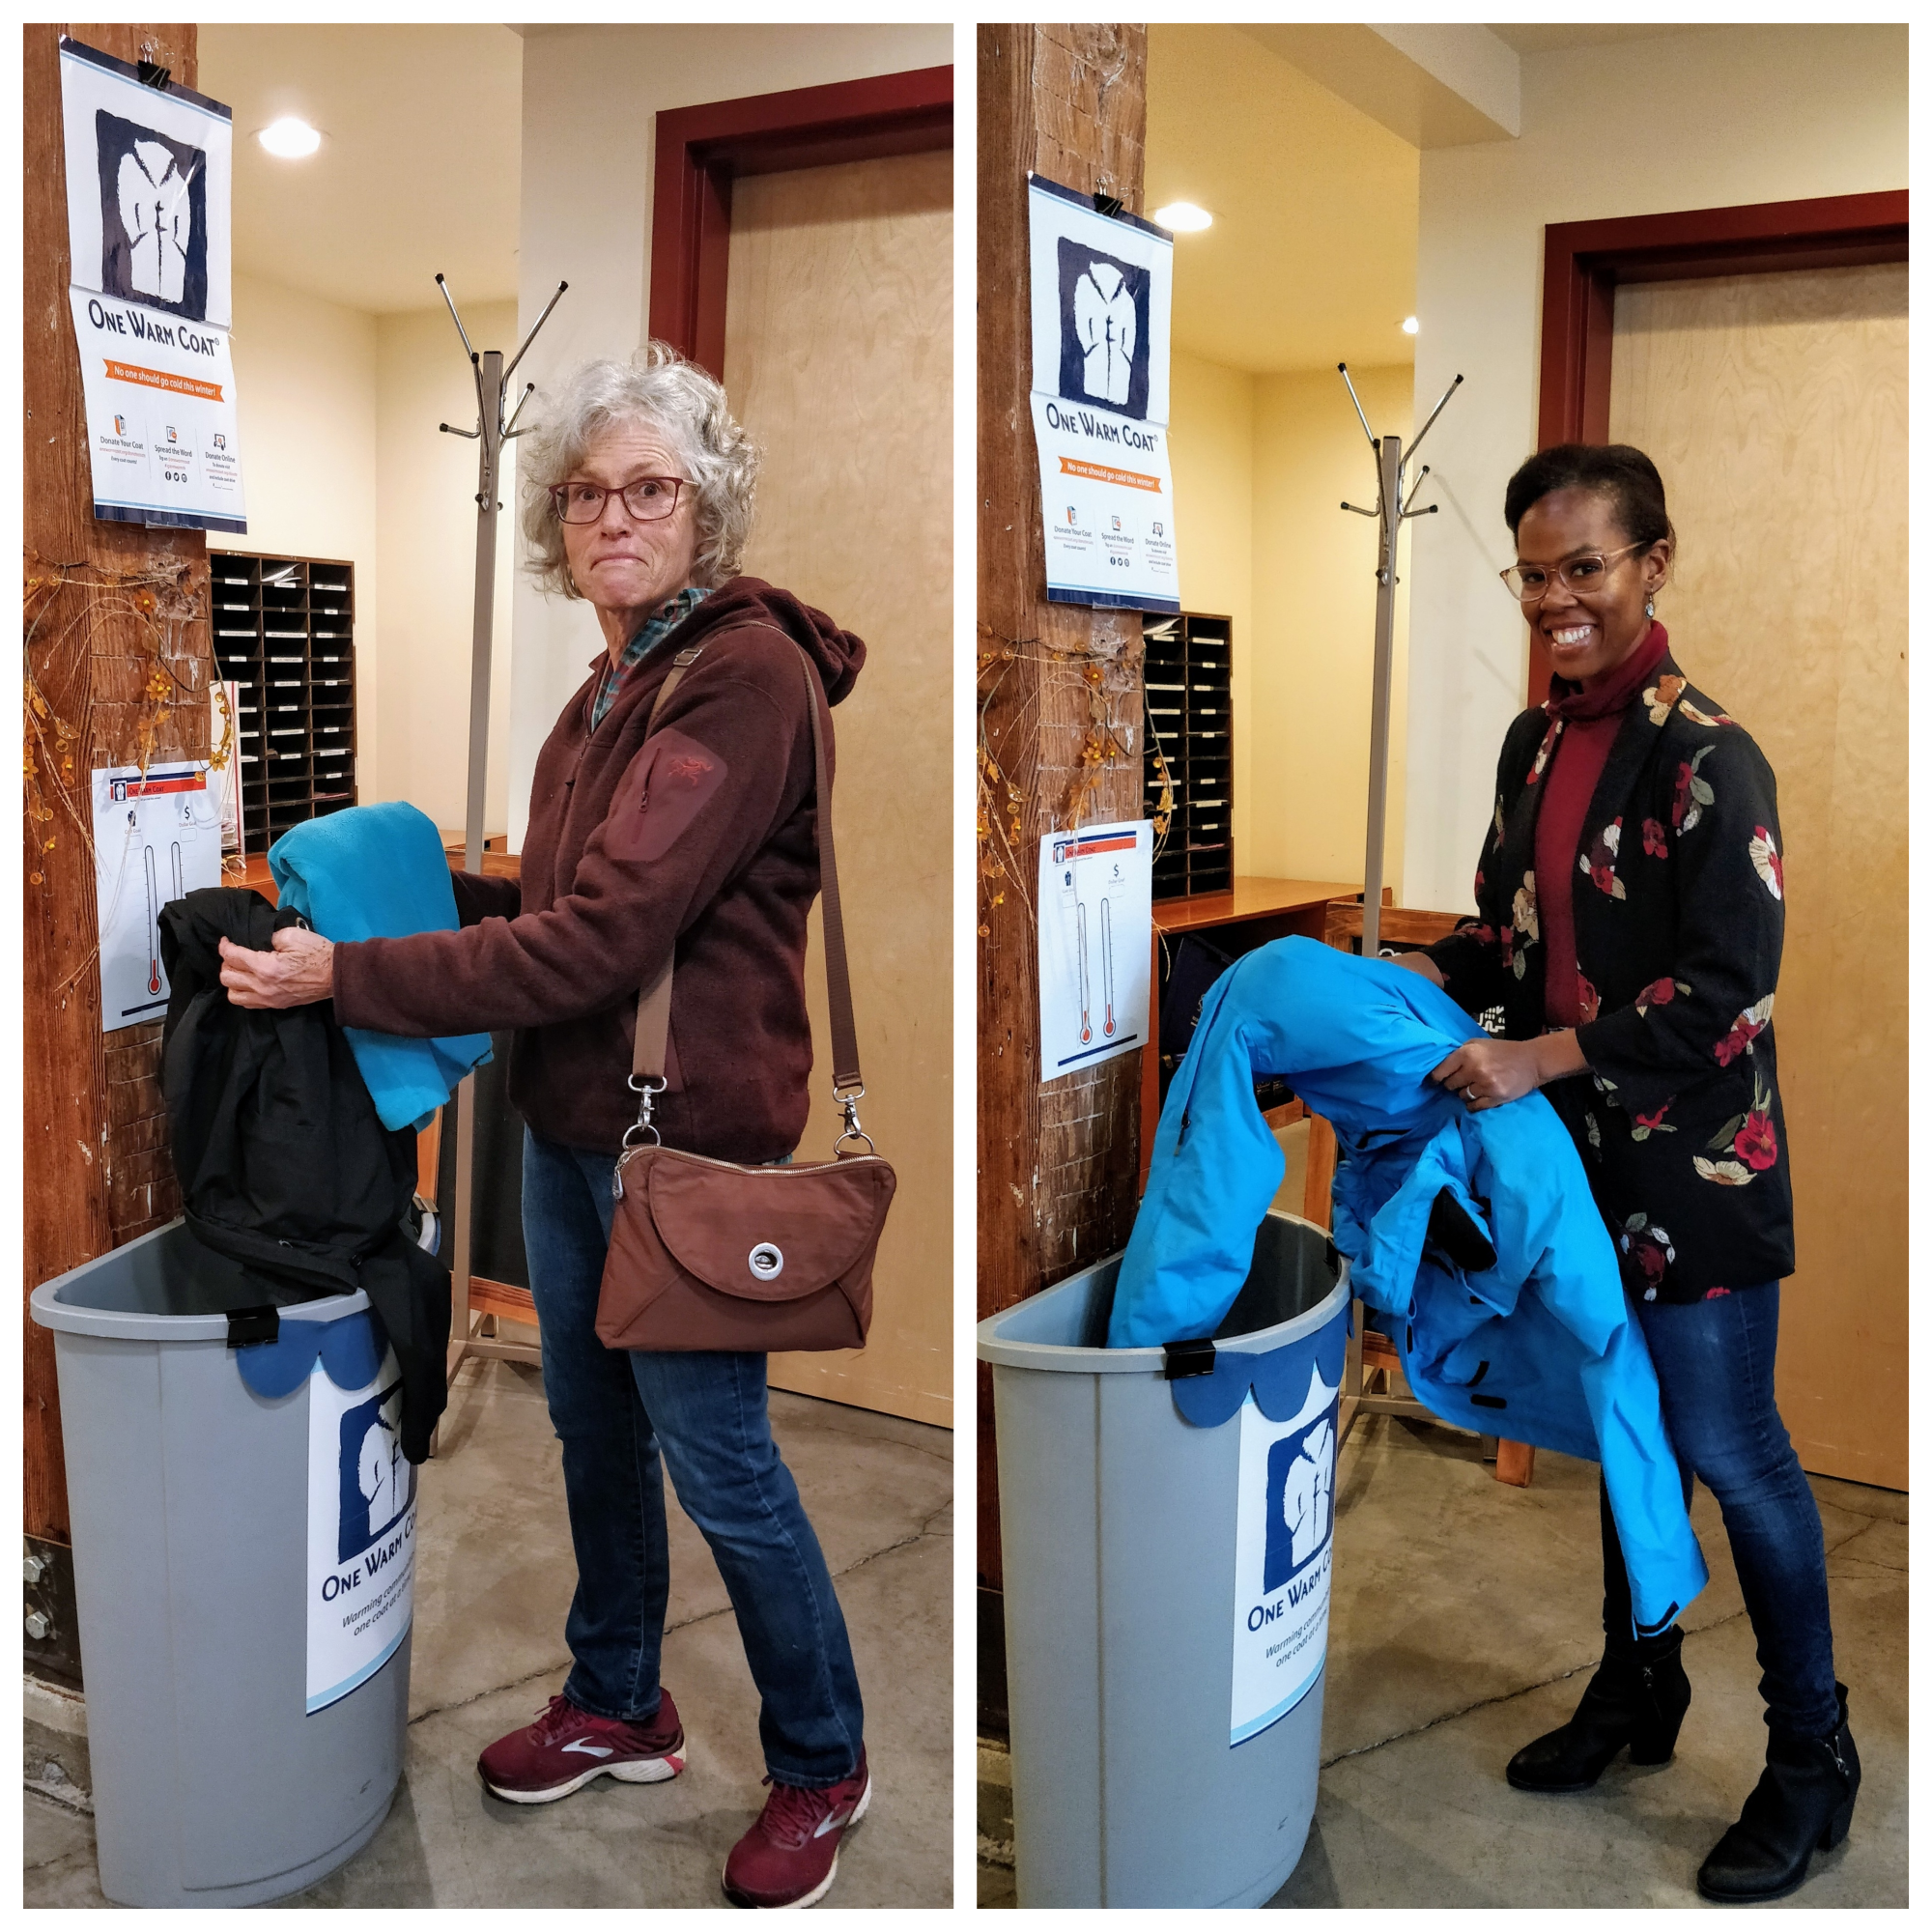 A collage; on the left is the first lady who donated coats, and on the left is our staff donating to the Coat Drive